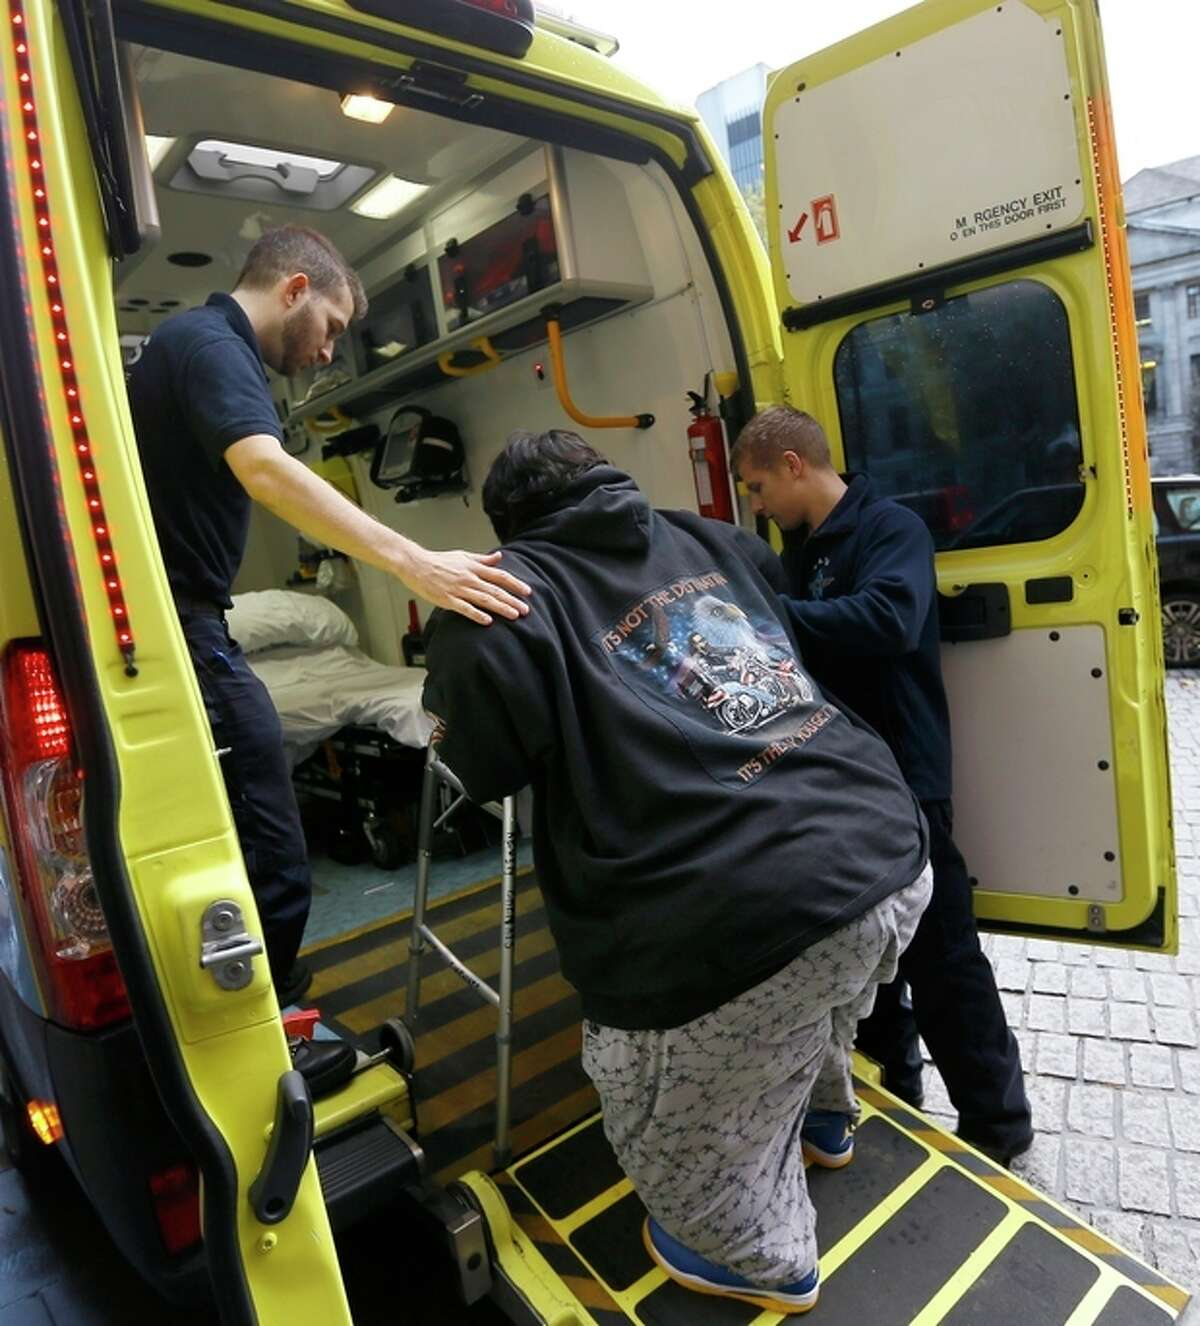 Kevin Chenais, centre, is assisted by ambulance staff onto an ambulance at St Pancras in London, Wednesday, Nov. 20, 2013. Kevin, who suffers from a medical condition will travel by ambulance and ferry back to France. Eurostar says it refused travel on its trains to the Frenchman who was earlier stranded in the United States because he was deemed too fat to fly home. The service that connects England to France and Belgium declined to allow Kevin Chenais on board because of safety rules governing travel through the Channel Tunnel. Eurostar says provisions require all passengers to have the ability to be safely evacuated and Chenais' immobility makes this impossible. (AP Photo/Kirsty Wigglesworth)